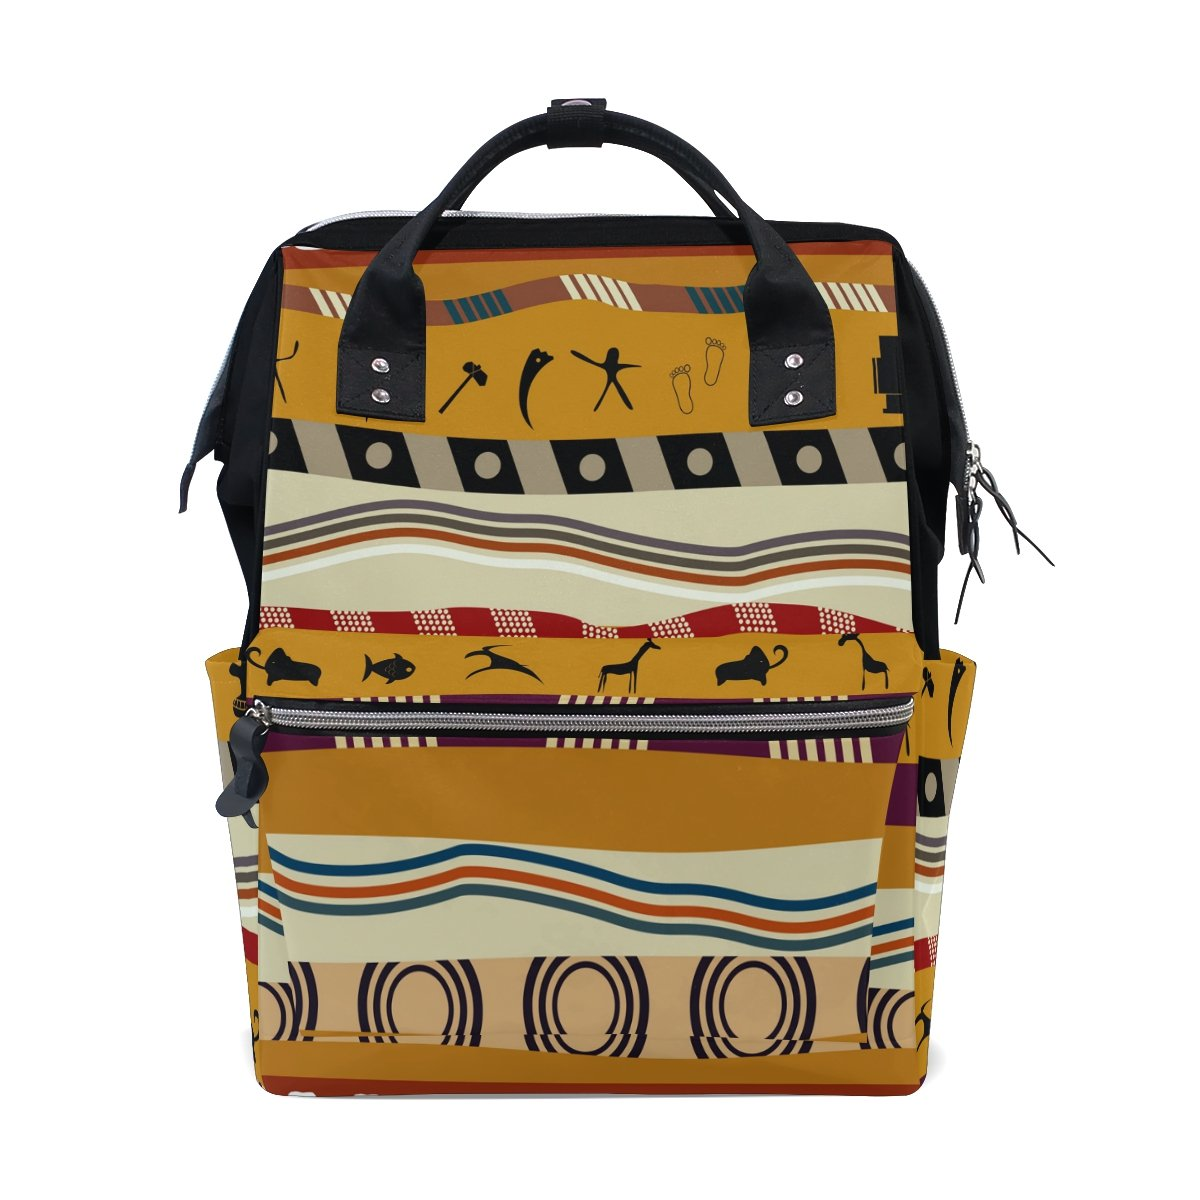 Diaper Bags Backpack Purse Mummy Backpack Fashion Mummy Maternity Nappy Bag Cool Cute Travel Backpack Laptop Backpack with African Floral Seamless Pattern Daypack for Women Girls Kids